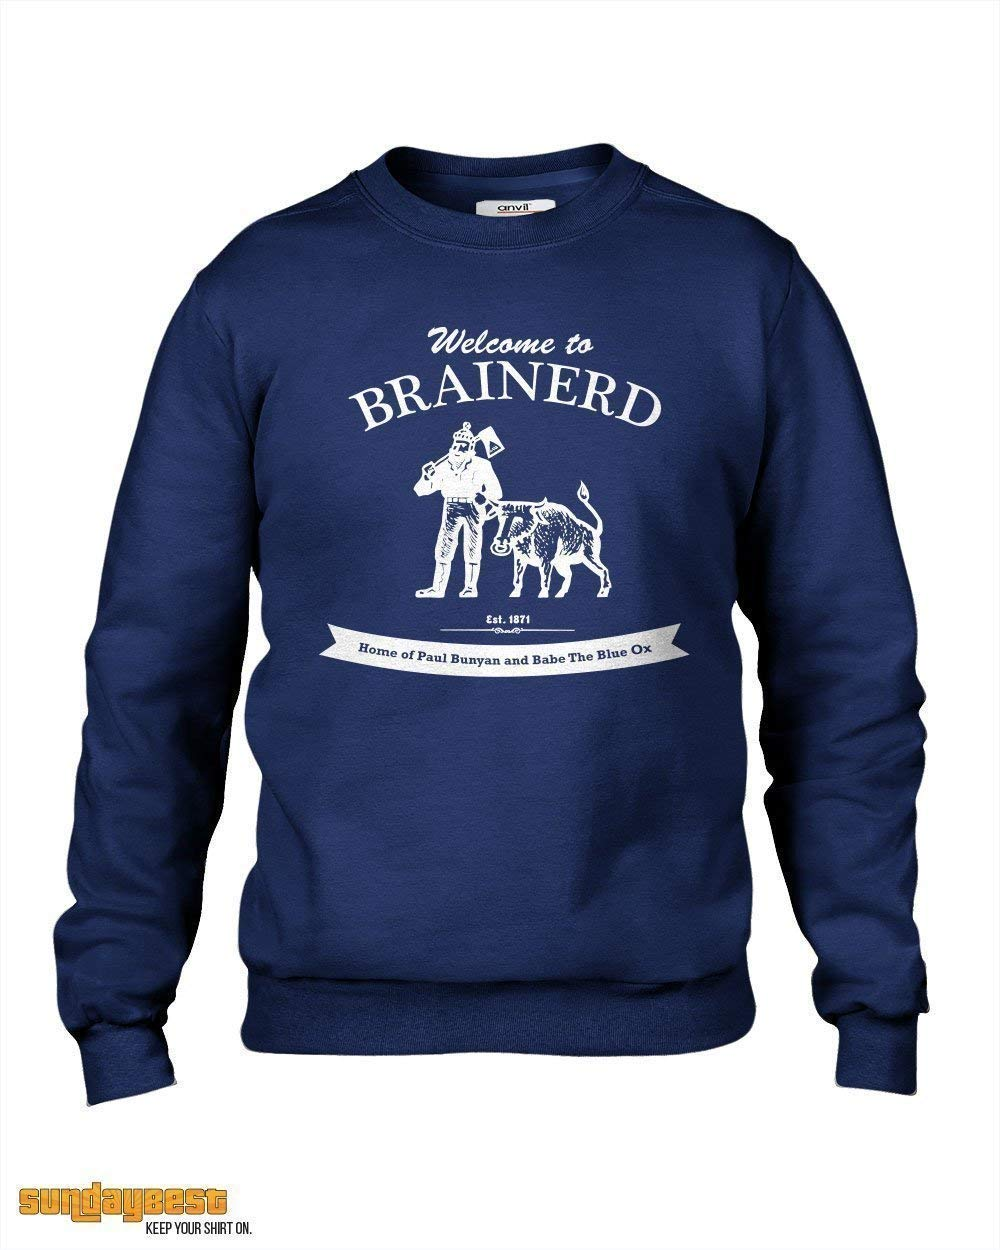 Welcome to Brainerd Fargo Movie T-Shirt Home of Paul Bunyan and Babe the Blue Ox